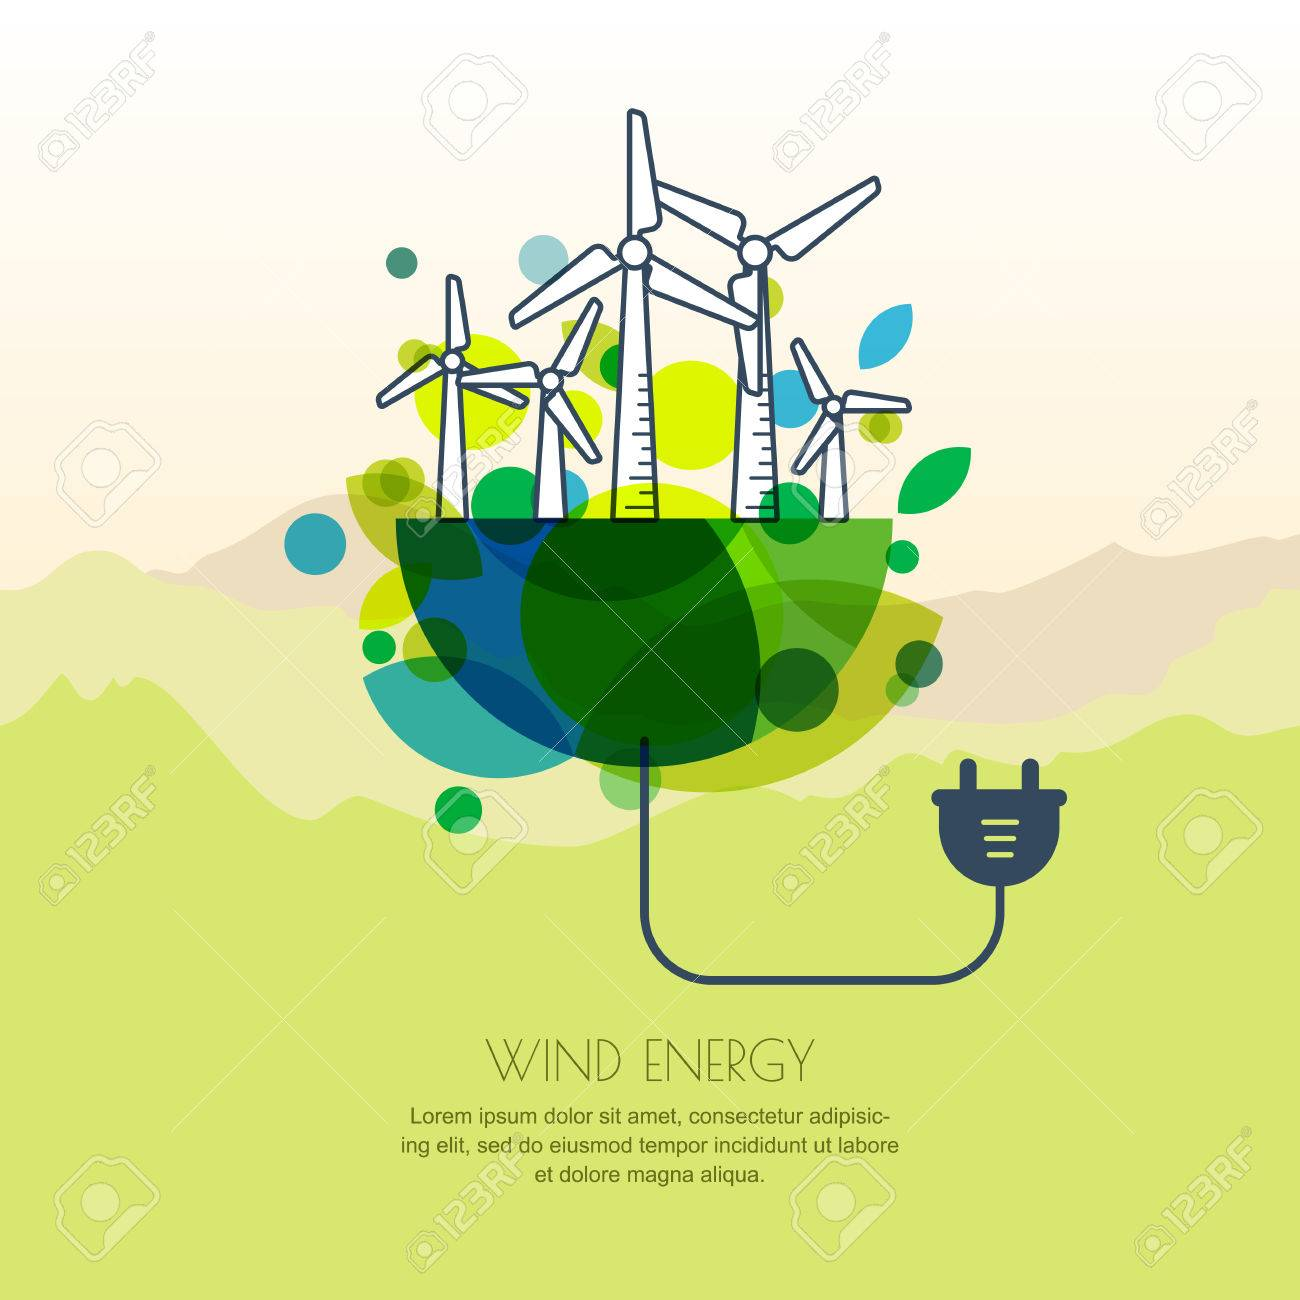 Vector Illustration Of Earth With Wind Turbines And Wire Plug Generator Diagram Alternative Energy Background Design For Save Day